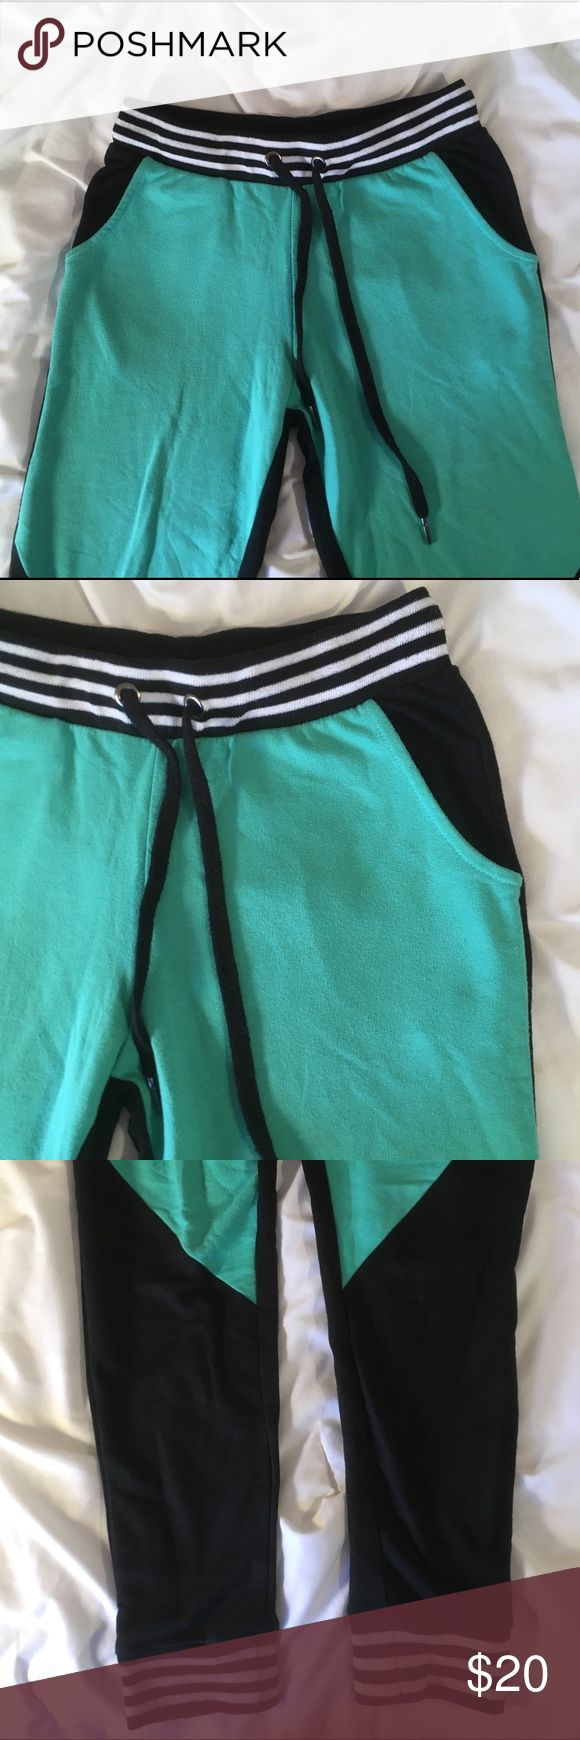 Black and Green Jogger Sweatpants These joggers are so comfy and so stylish. Perfect for relaxing or going to the gym! Used but in good condition. Rue 21 Pants Track Pants & Joggers